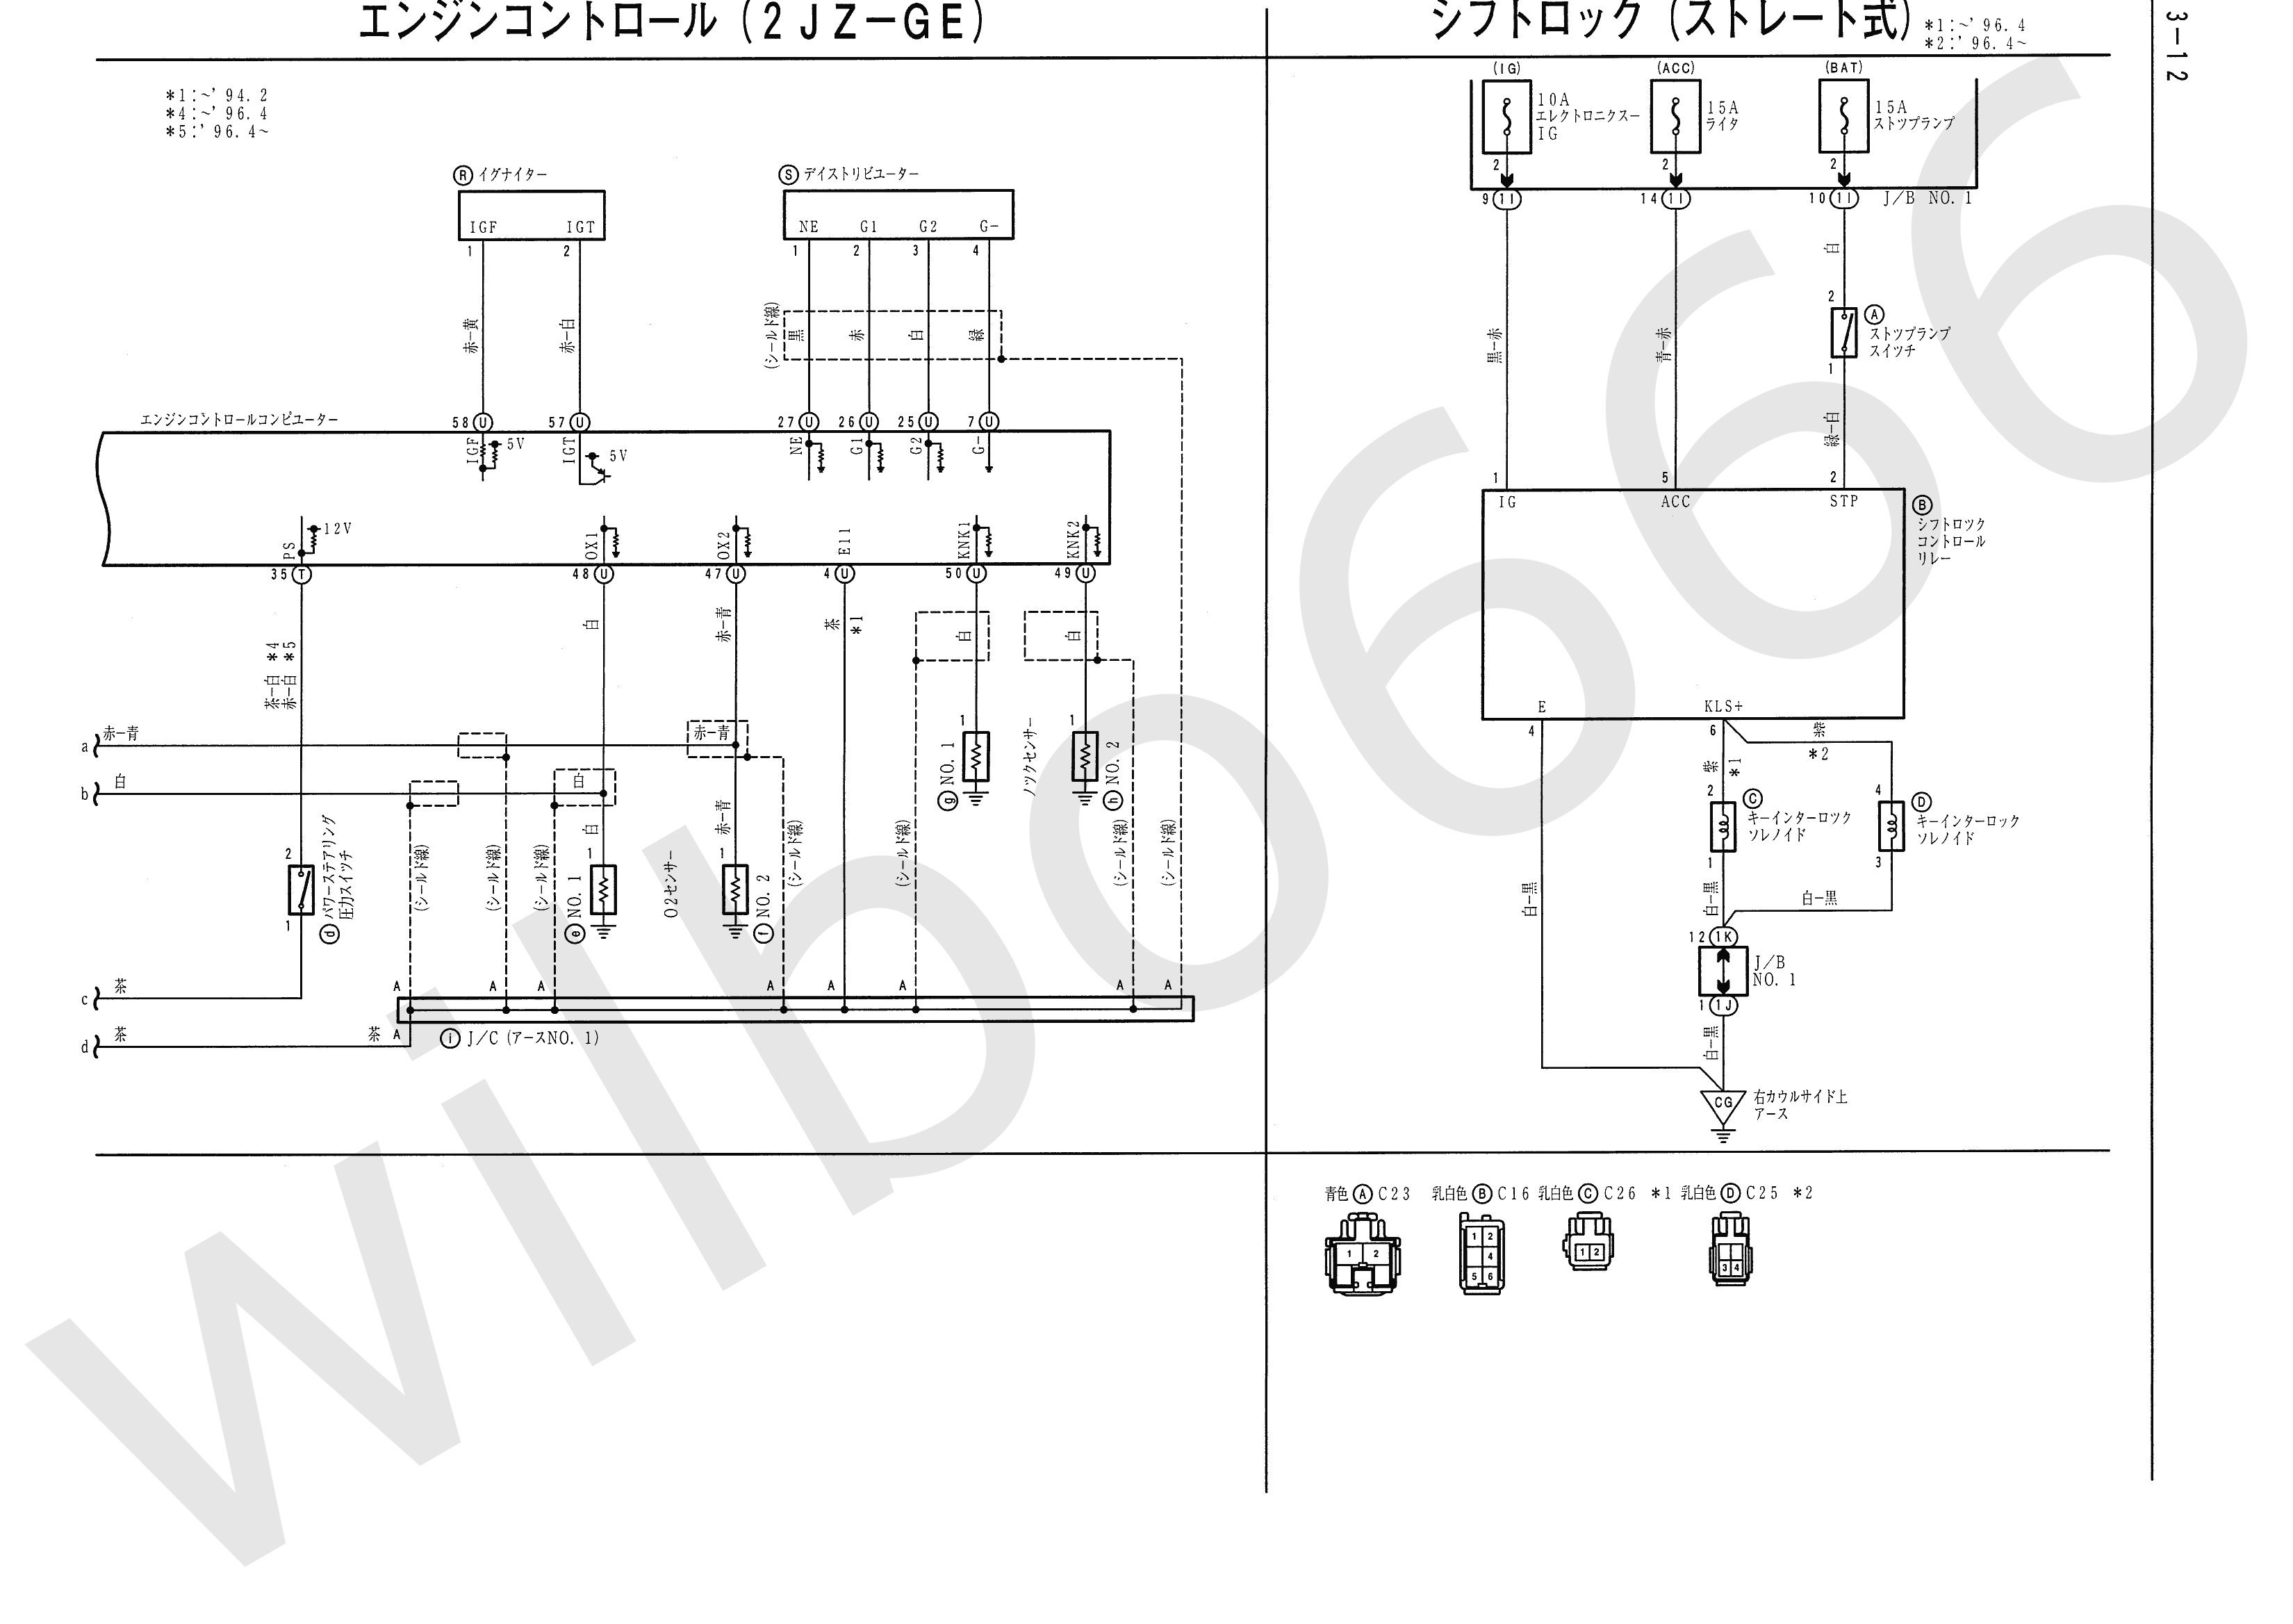 1993 2jz Ge Wiring Diagram - Wiring Diagram Home Run Electrical Wiring Diagrams on home wiring problems, home electrical service, spst switch diagrams, home electrical repair, home electrical color codes, rough in plumbing diagrams, house plumbing diagrams, home ventilation diagrams, home wiring codes, home security wiring diagram, home structured wiring diagram, series and parallel circuits diagrams, home internet wiring-diagram, home electrical diagrams layouts, home electrical installation, house plan diagrams, electrical connections diagrams, home run wiring diagram, home electrical plan layout, home electrical schematics,